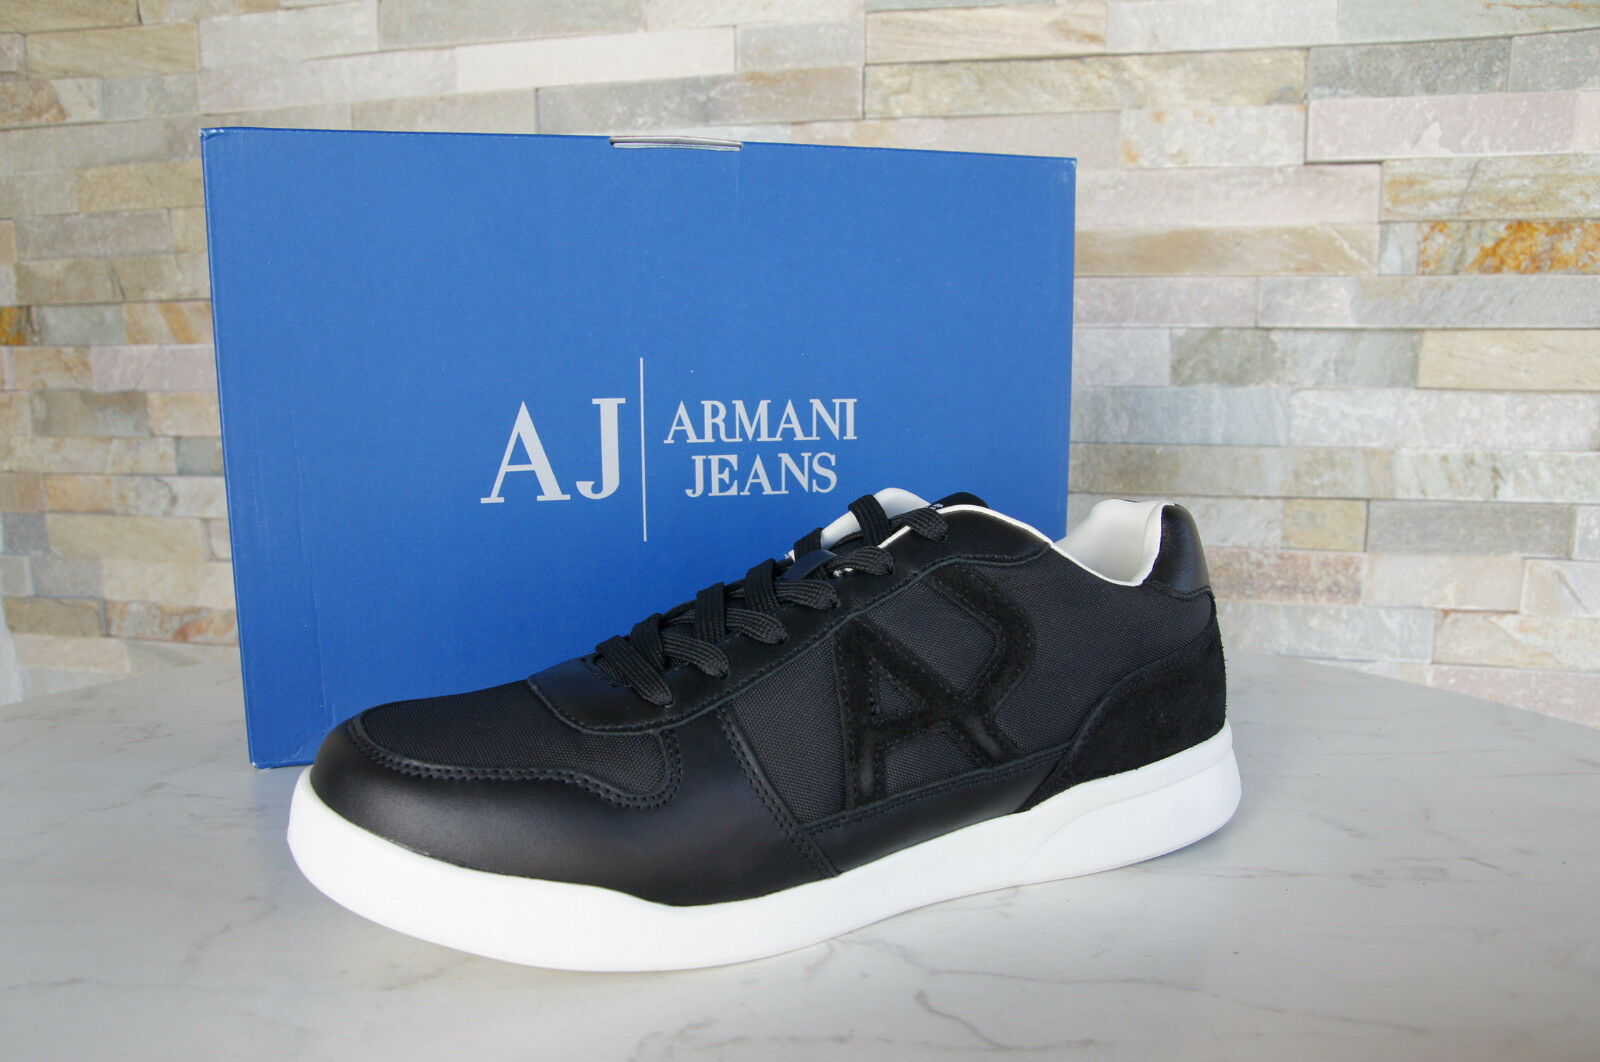 Armani Jeans Sneakers Trainers Size 42 Sport shoes 6A441 New Black Previously